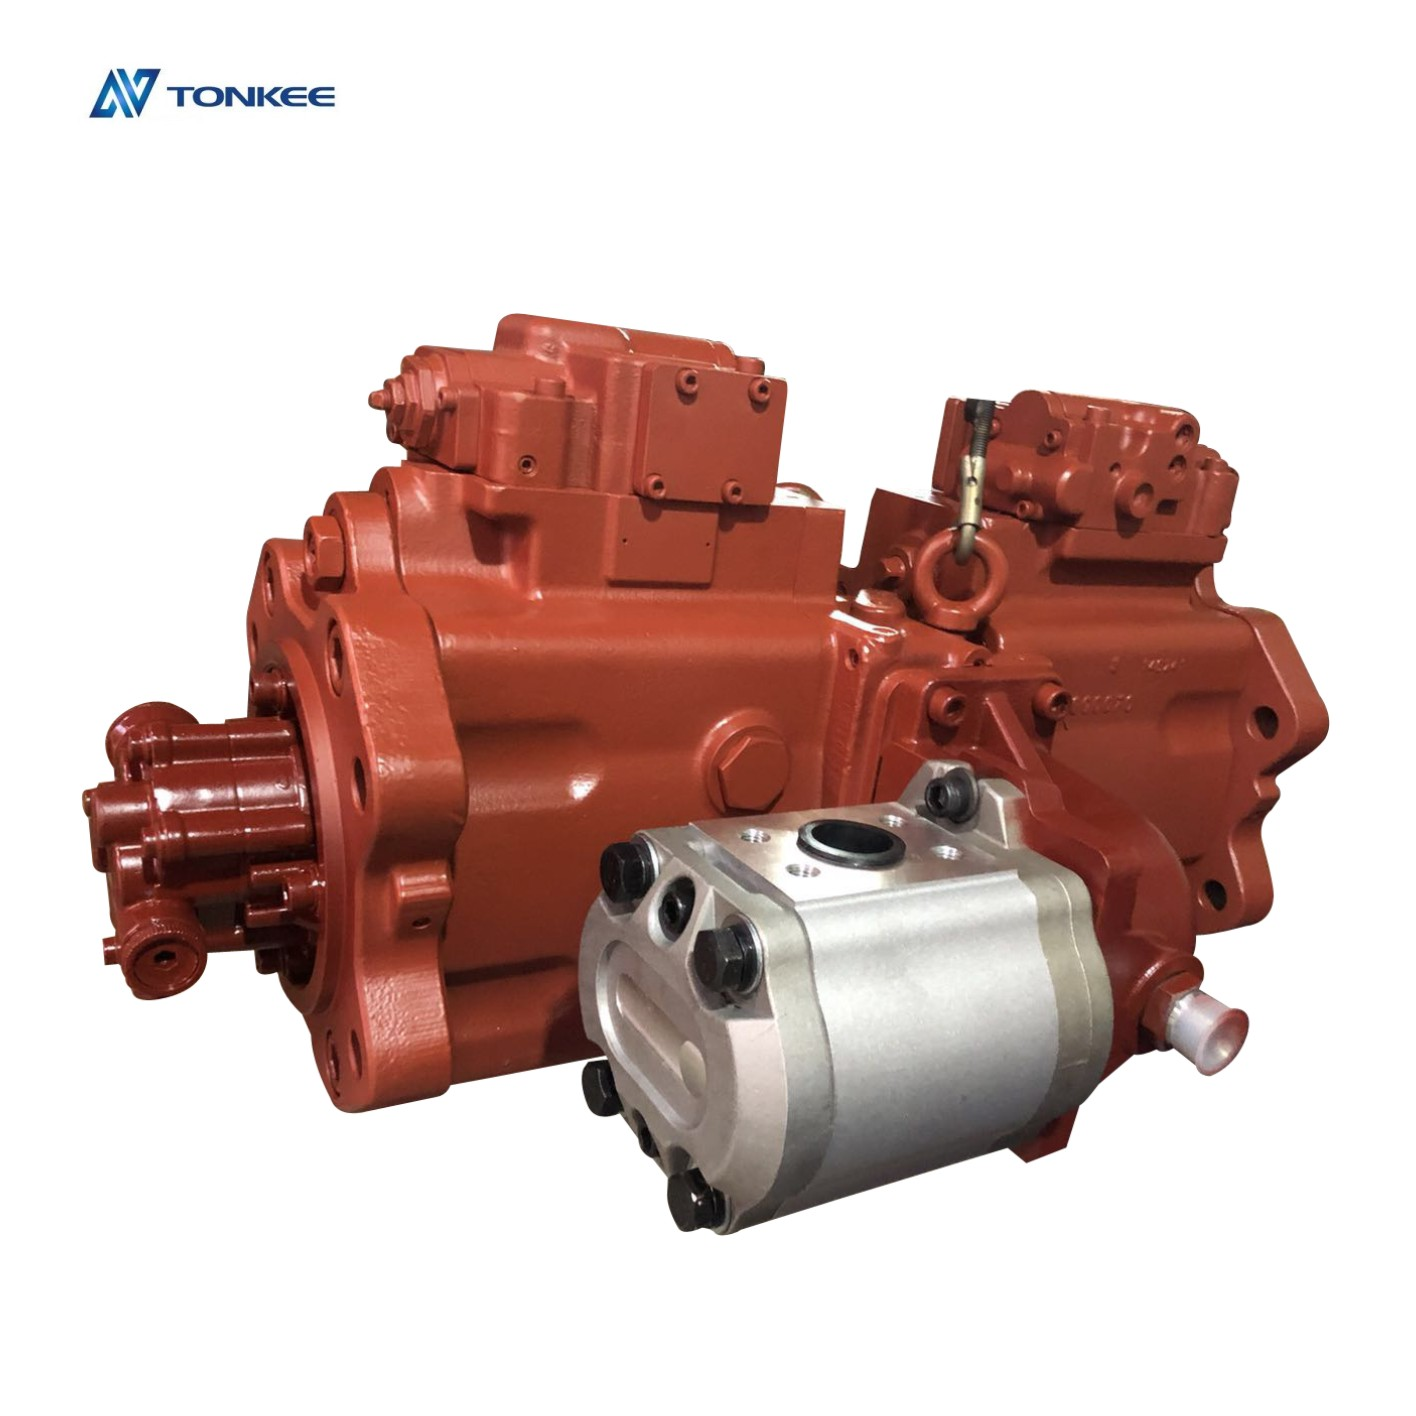 K3V180DTP piston pump 3228733 converted hydraulic pump parts replace A8VO200 E336D 336D main pump